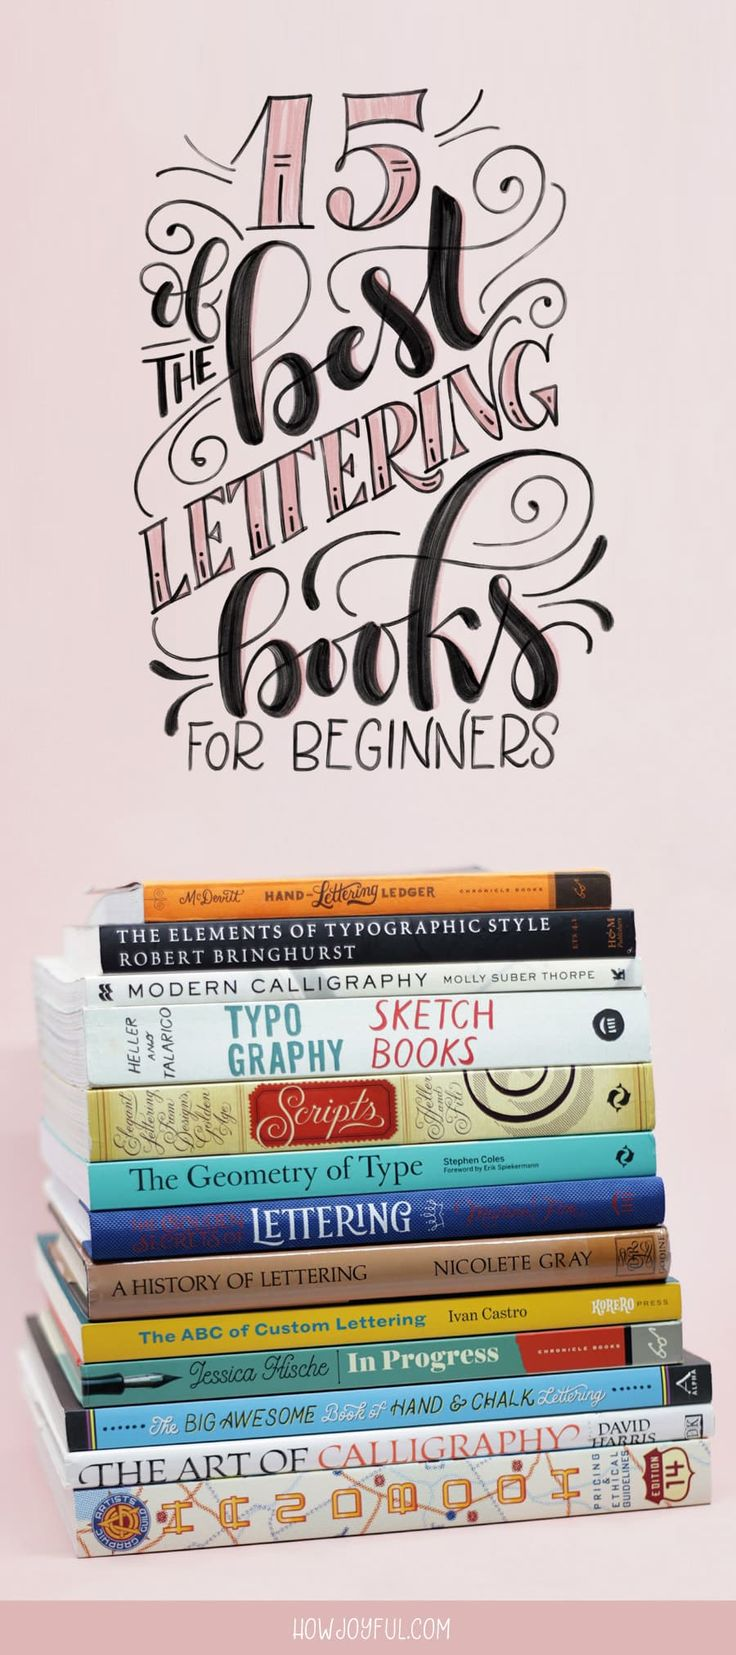 10 Lettering and Calligraphy Books for Beginners | Dawn ...